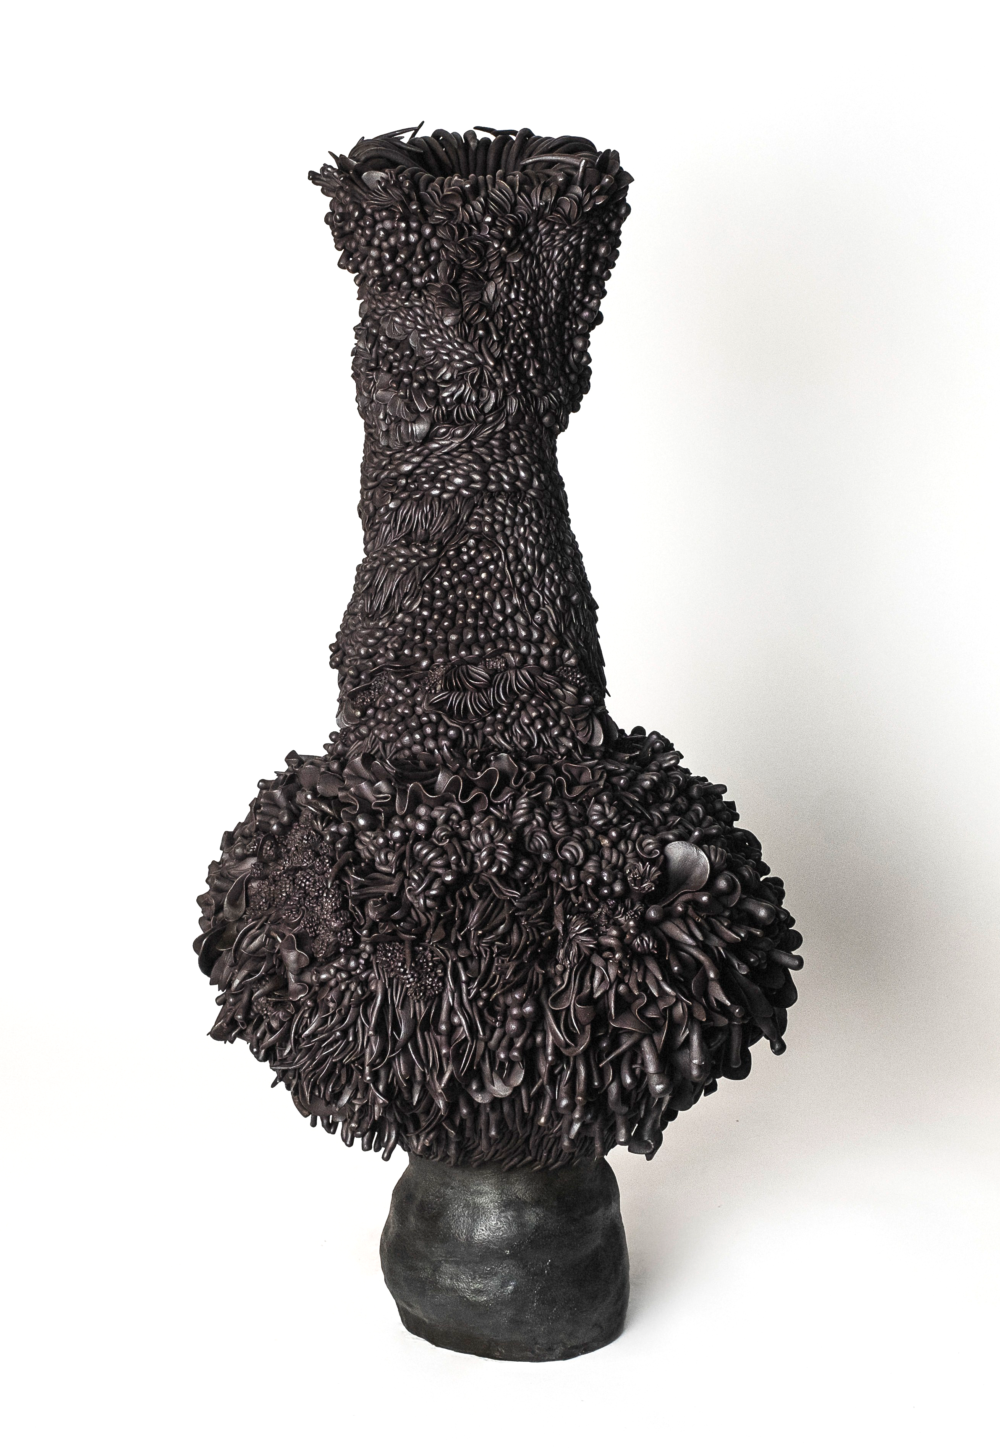 'Walking for Wildflowers', 2021, porcelain, stoneware and black oxide, 74 x 44 x 46 cm